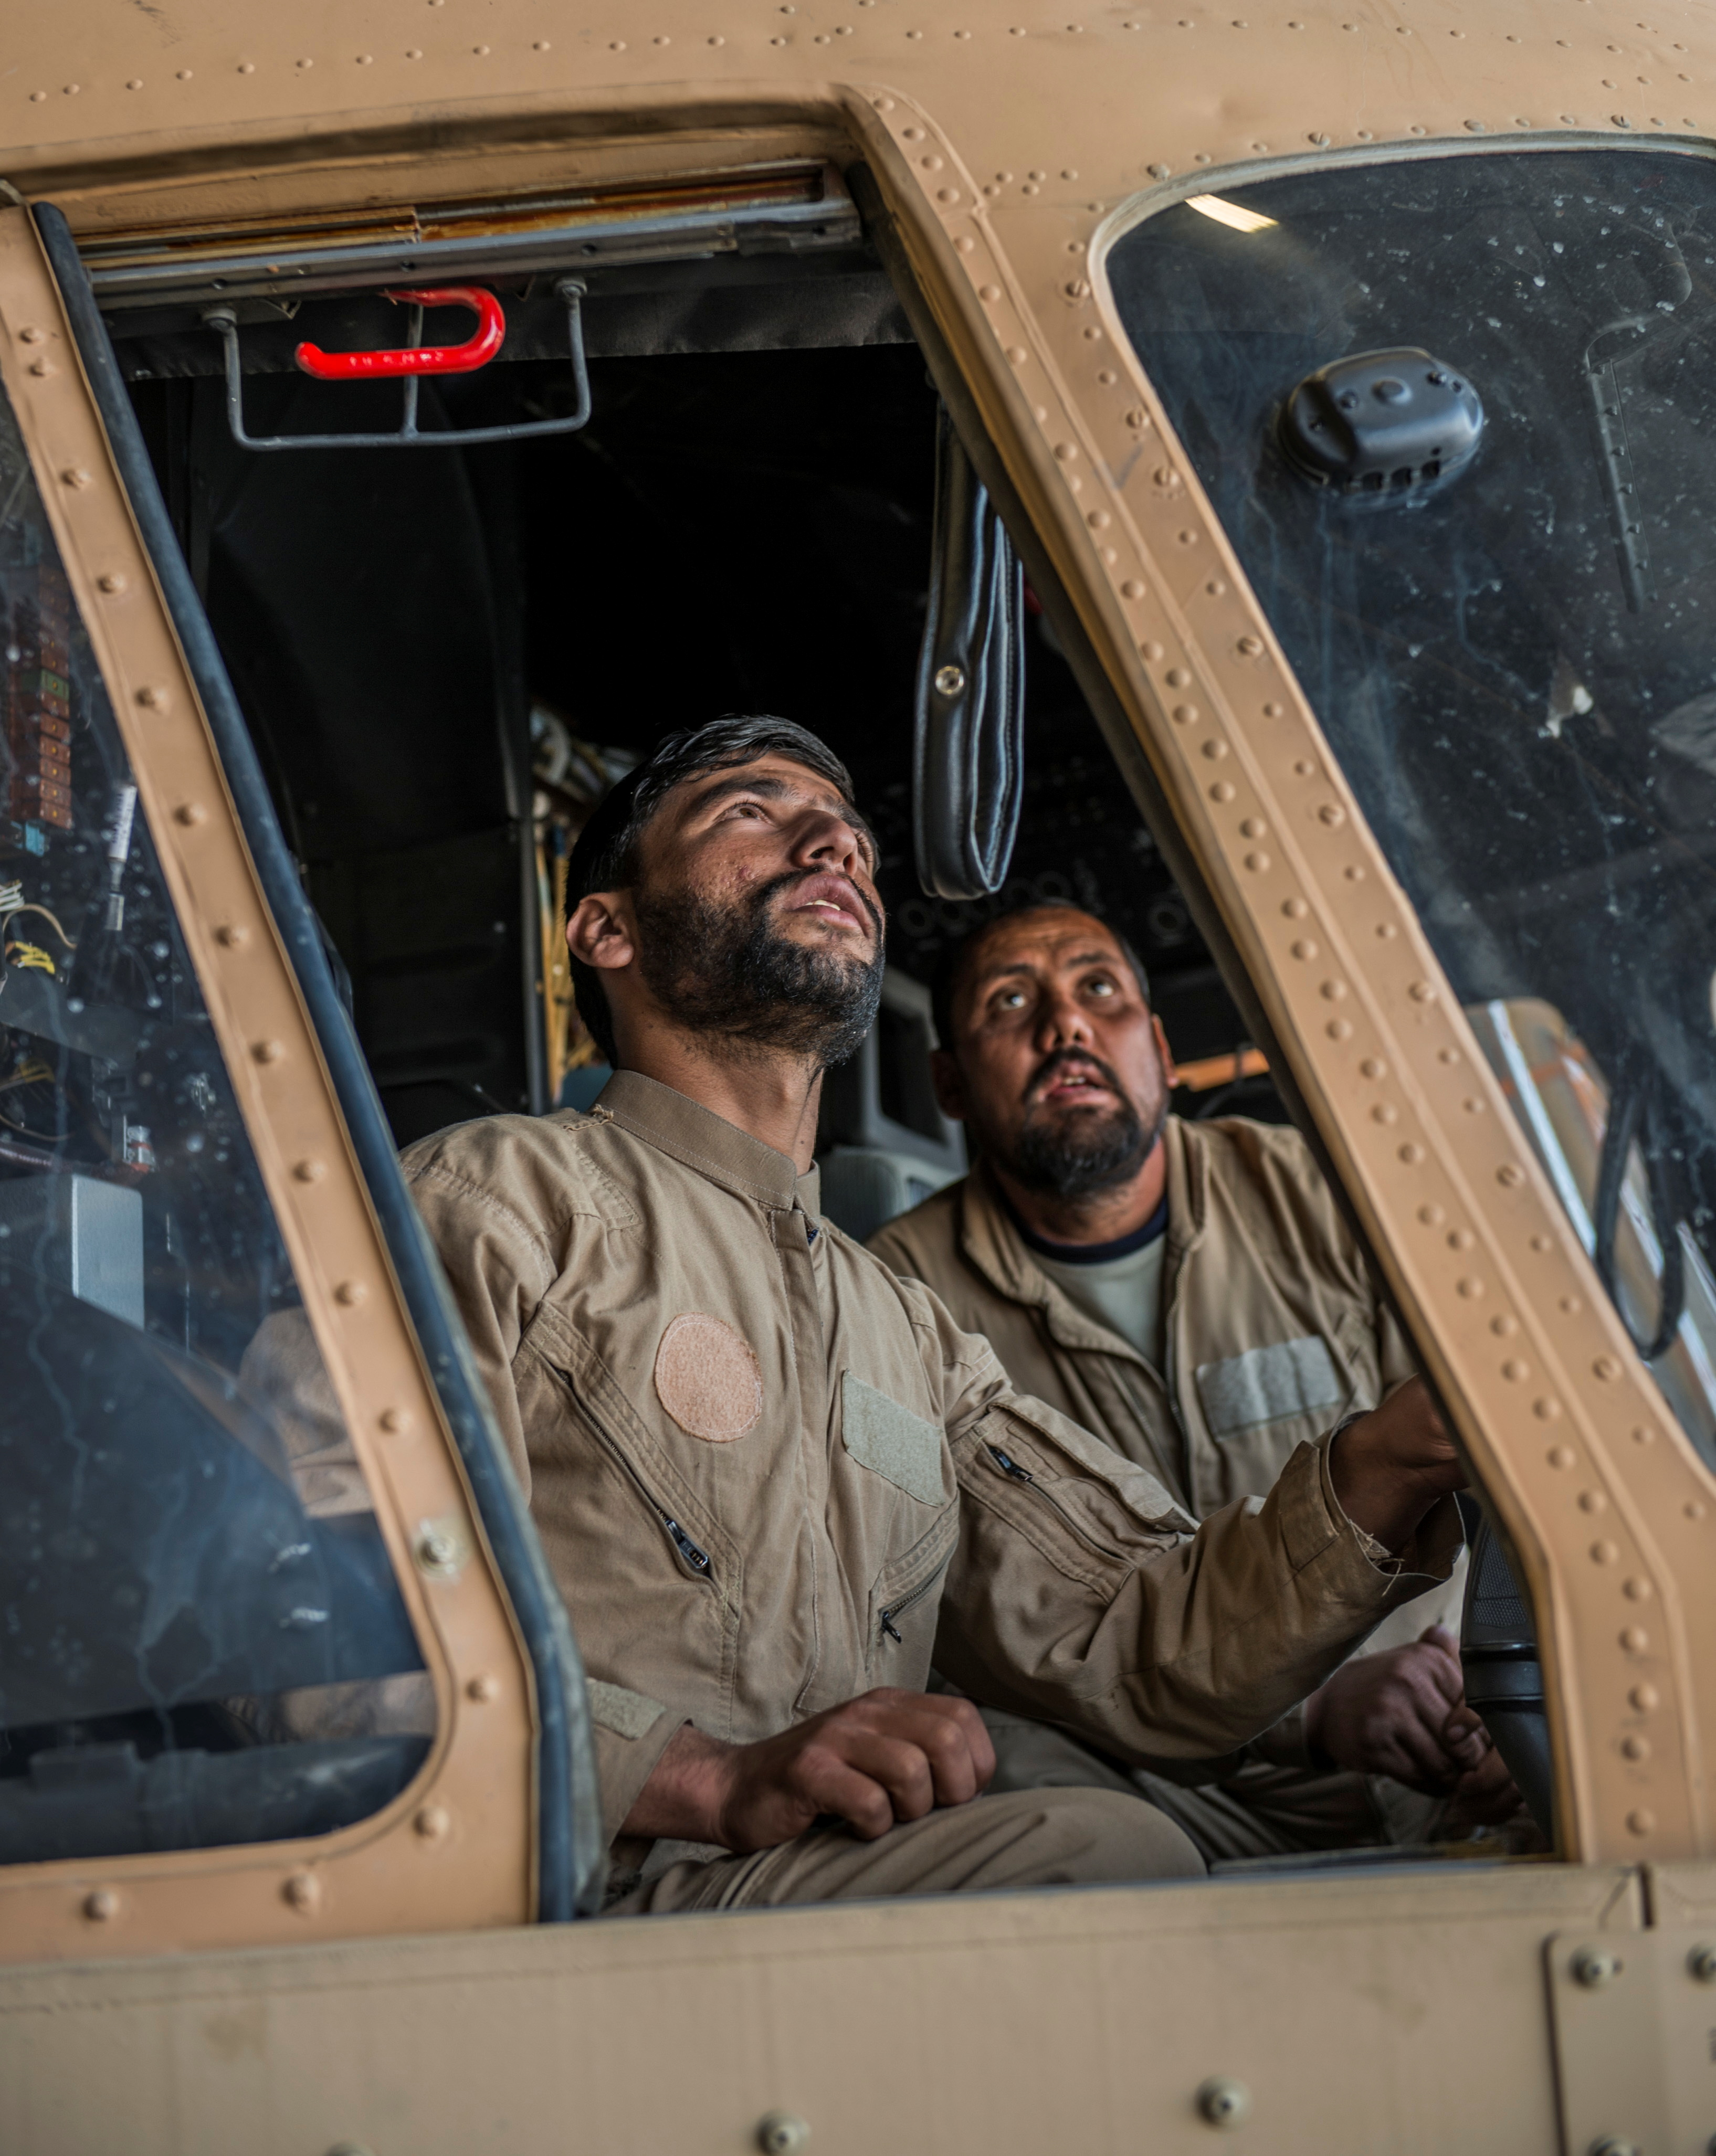 Afghanistan Air Force member Khalid and Sergeant Hyatullah of the Kandahar Air Wing work in the cockpit of an MI-17 helicopter on Kandahar Airfield, Afghanistan, November 2, 2017. Picture taken November 2, 2017. To match Special Report USA-AFGHANISTAN/PILOTS    U.S. Air Force/Staff Sgt. Sean Martin/Handout via REUTERS